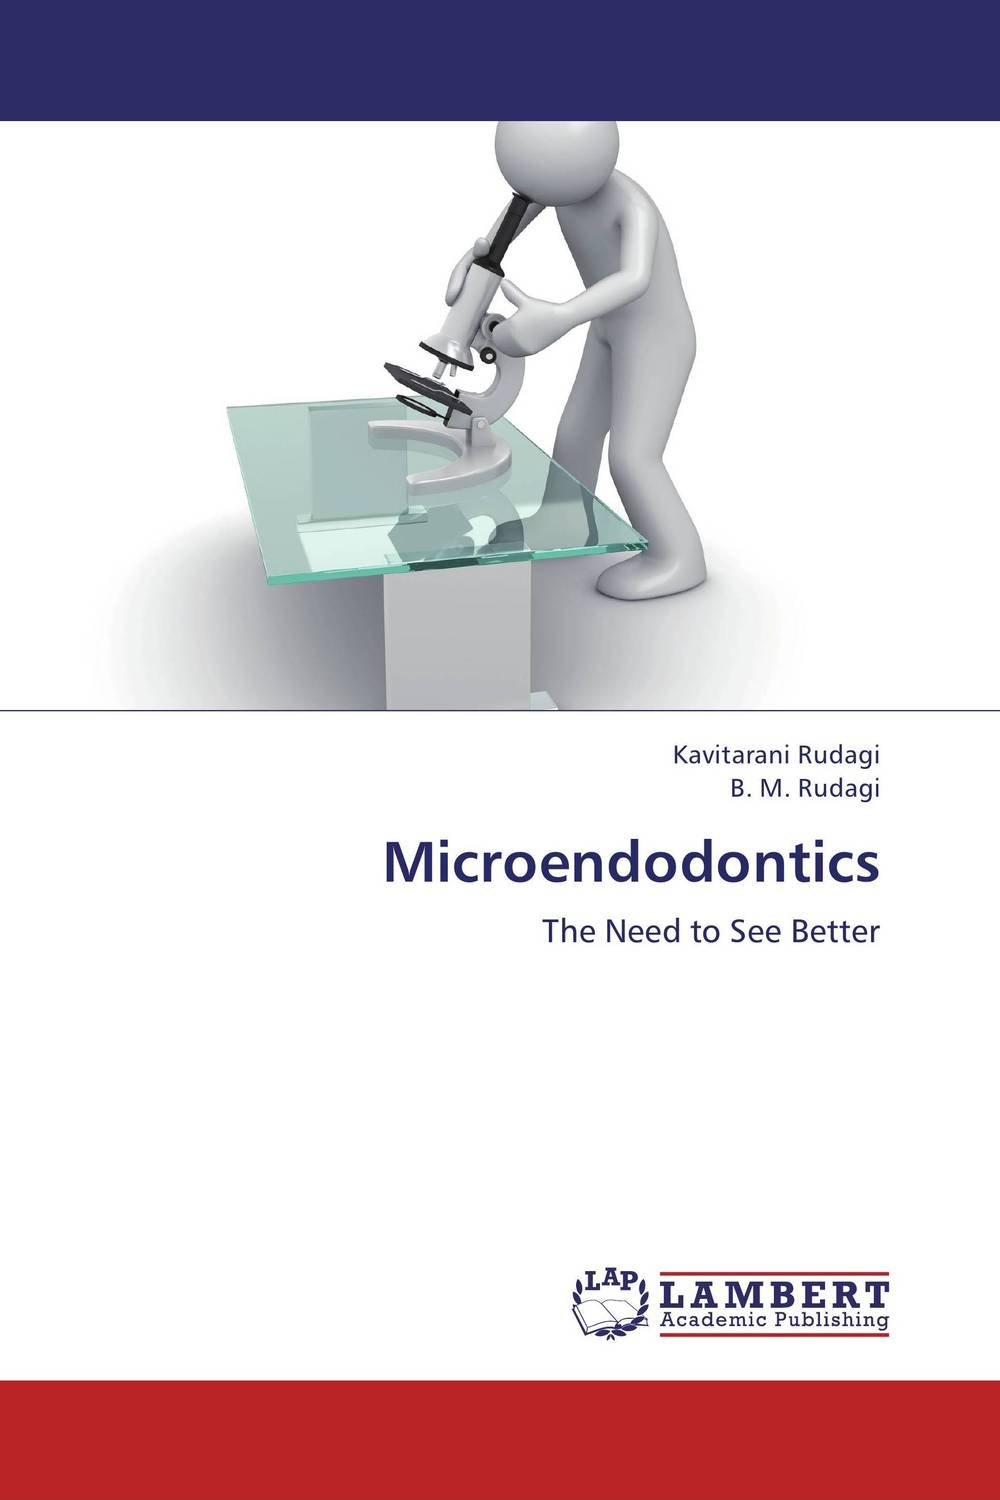 Microendodontics the teeth with root canal students to practice root canal preparation and filling actually